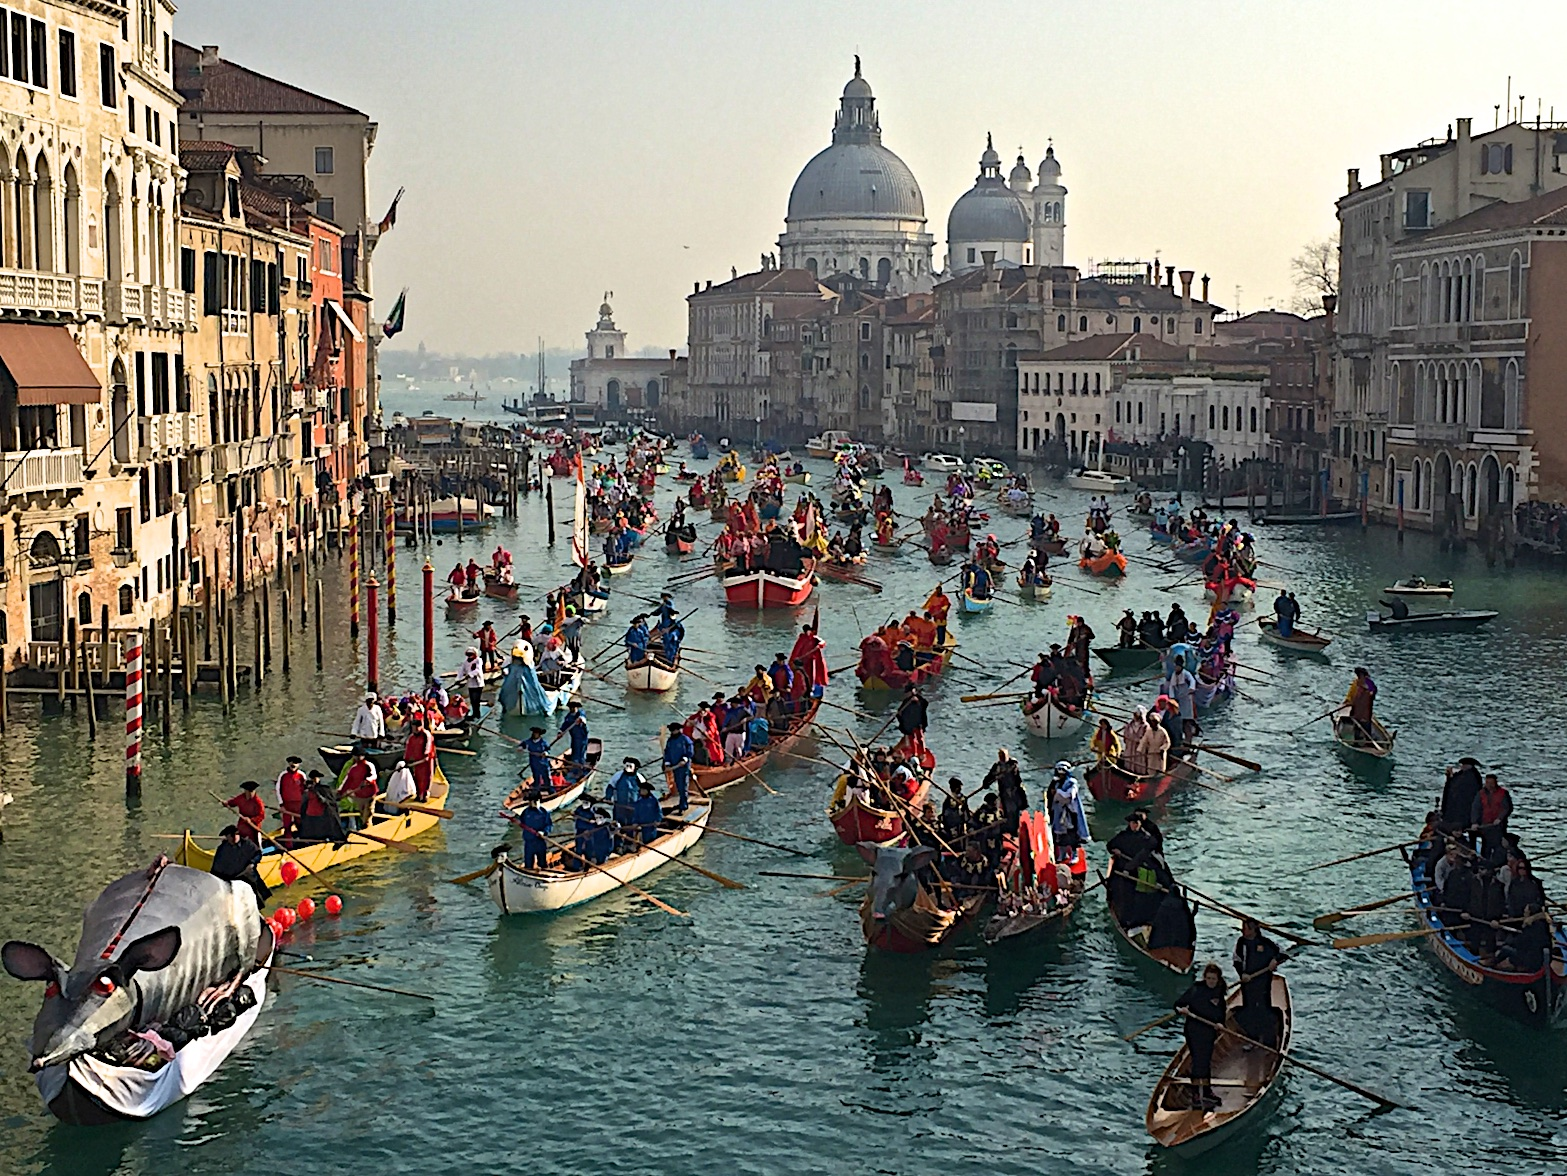 Milan To Rome >> Carnevale di Venezia – masks, costumes, boats and fritelle | Olive Oil and Lemons | Dina Honke